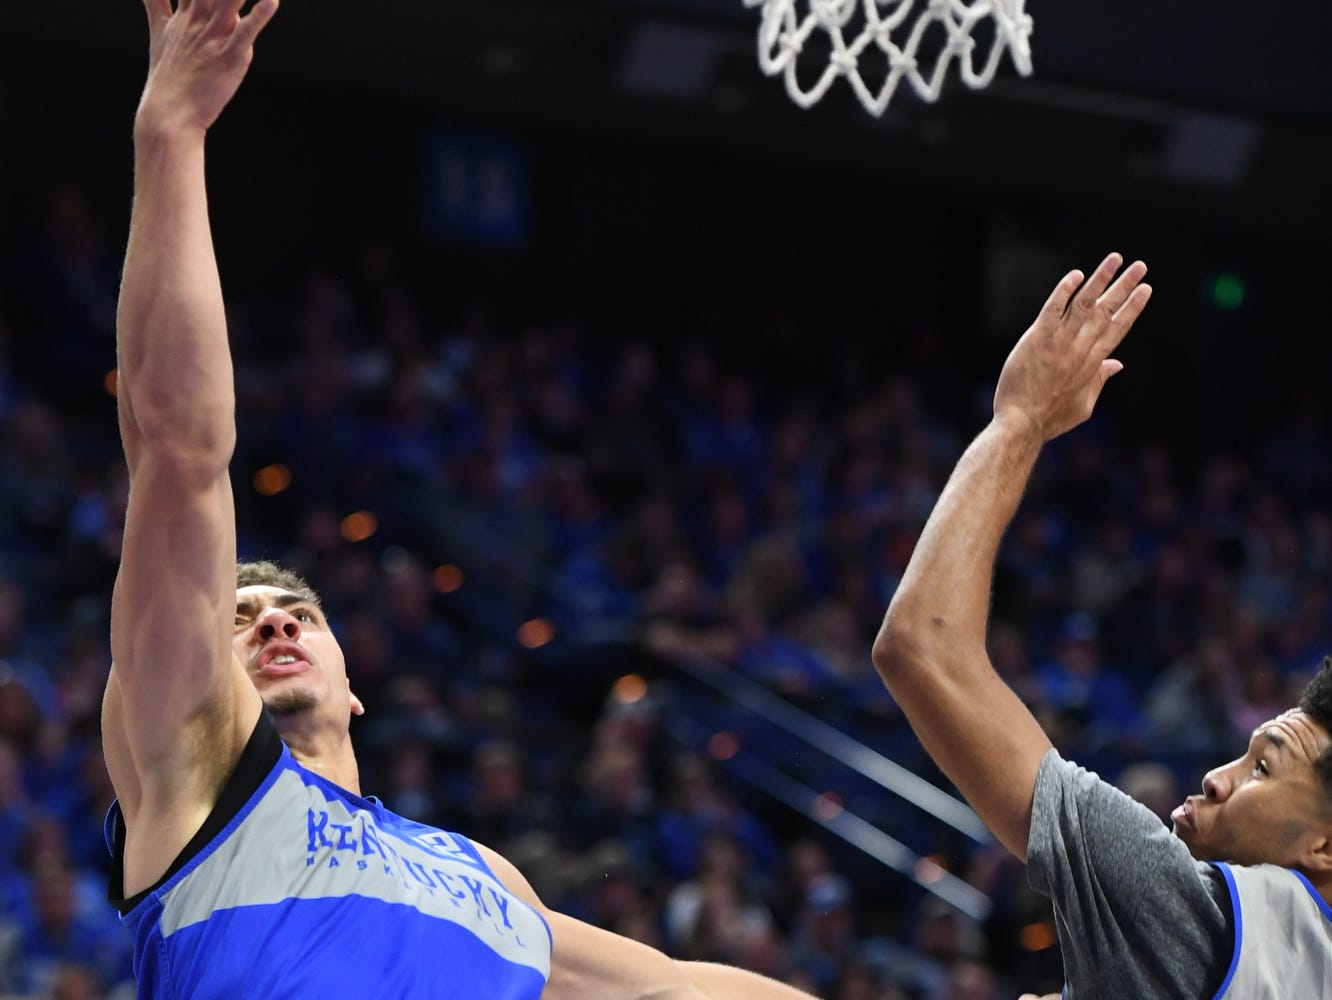 UK F Reid Travis puts up the ball during the University of Kentucky mens basketball Blue/White game at Rupp Arena in Lexington, Kentucky on Sunday, October 21, 2018.